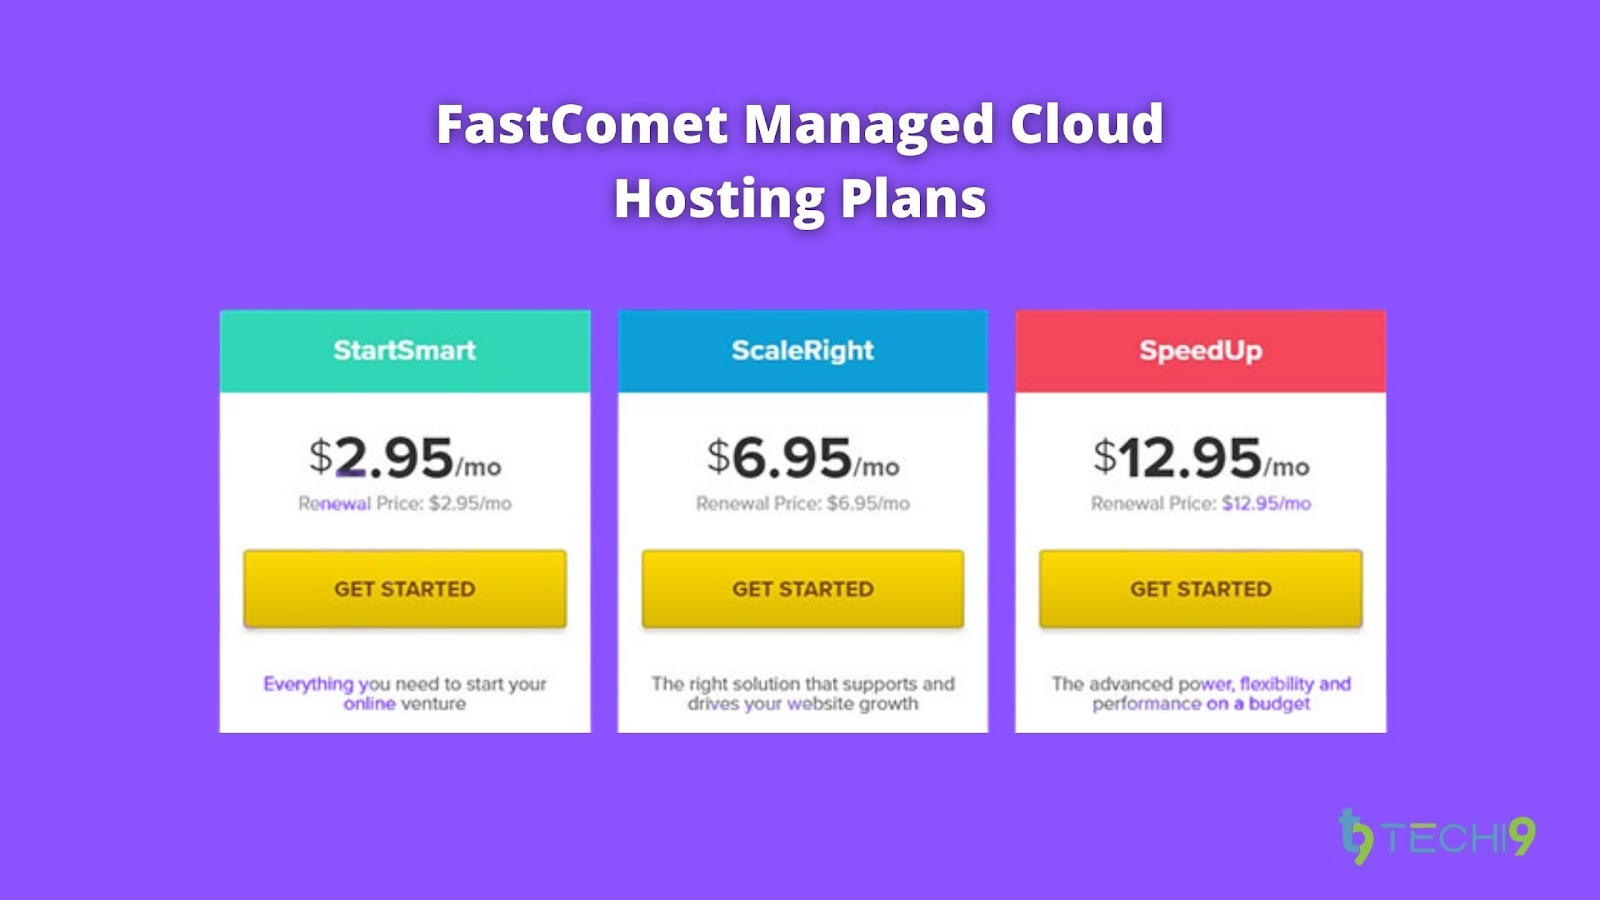 FastComet Managed Cloud HostingPricing Plans